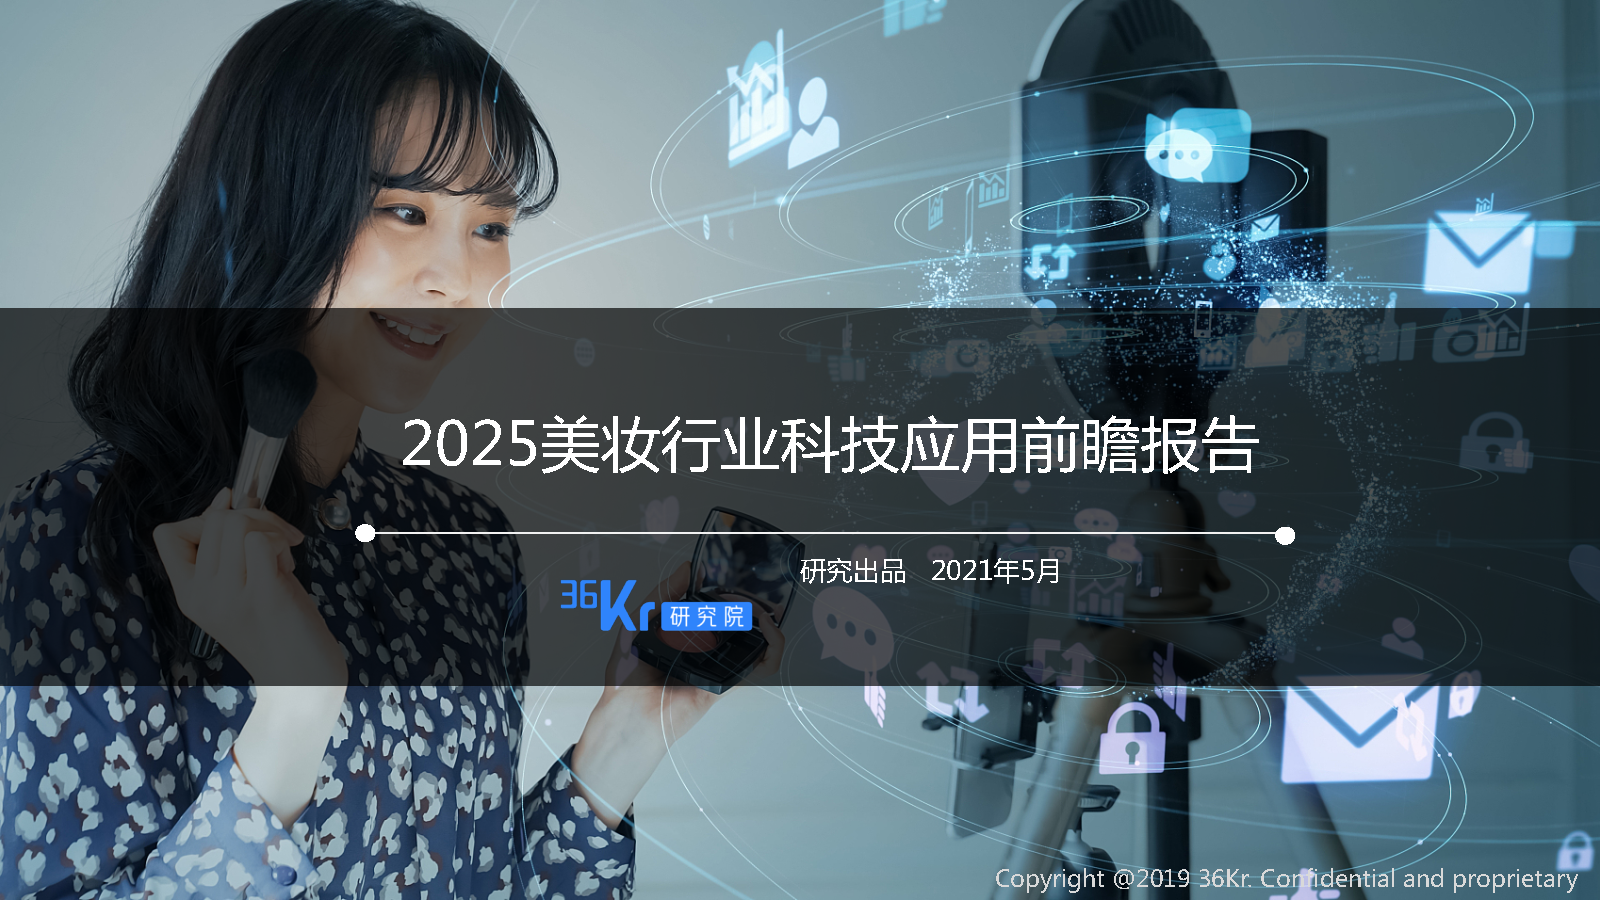 36Kr Research Institute   2025 Beauty Industry Technology Application Prospective Report